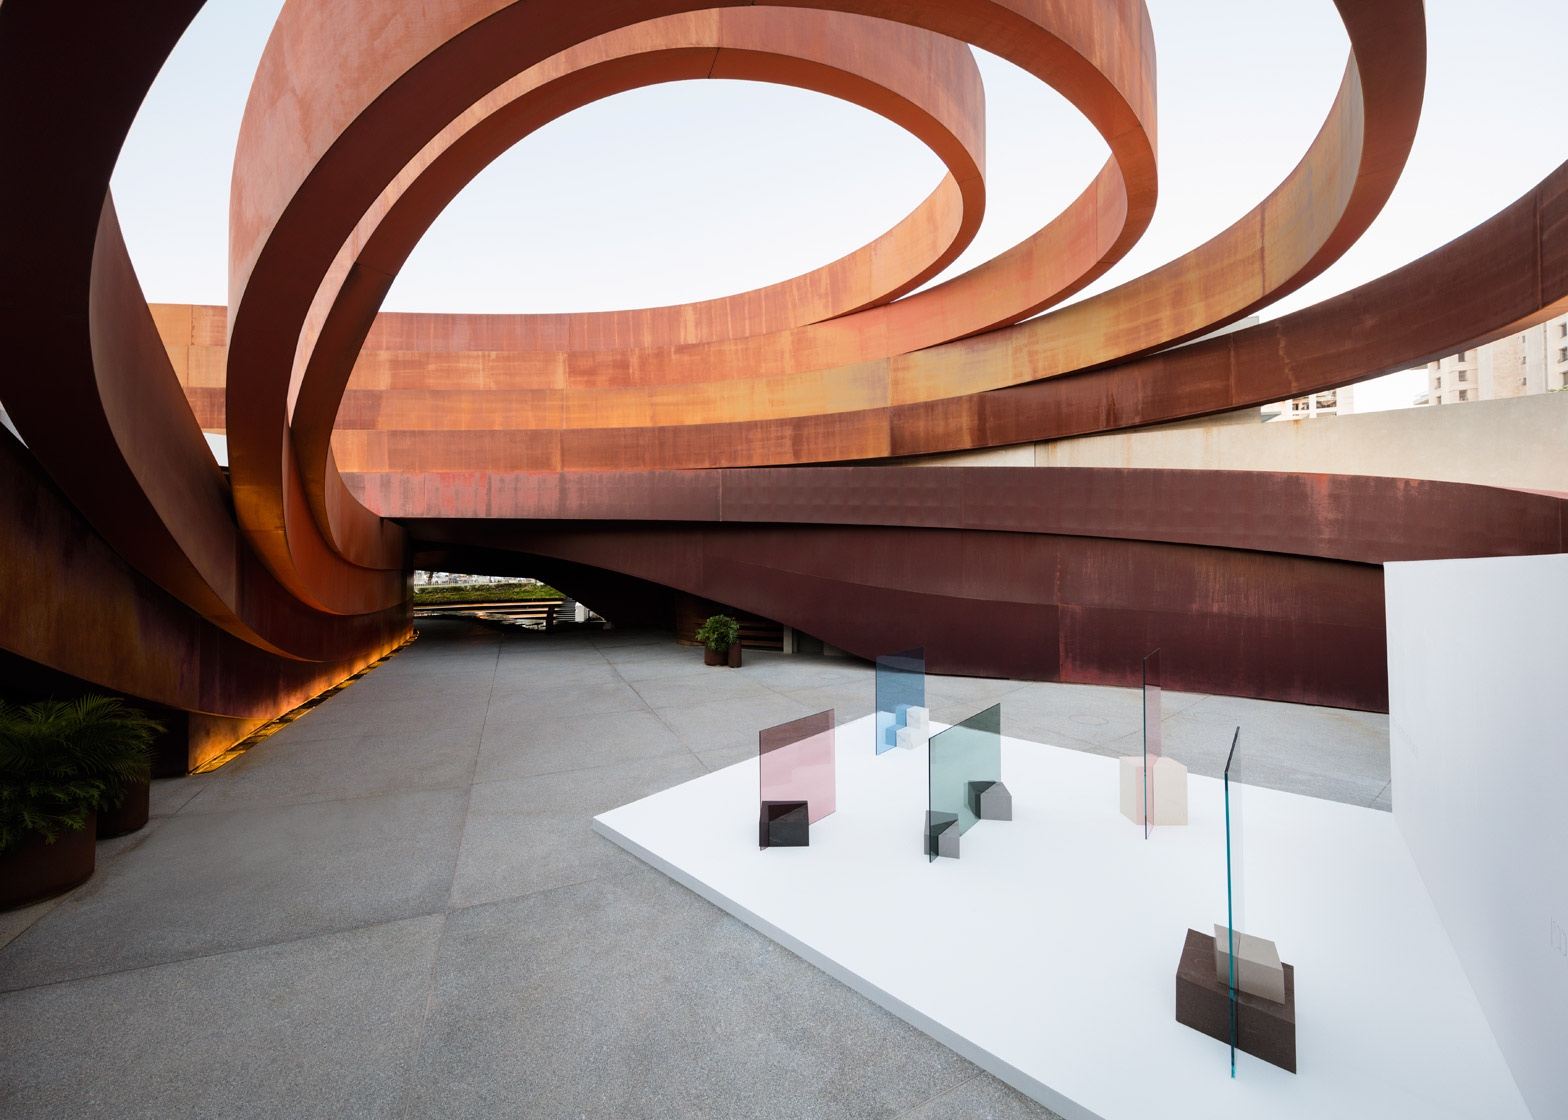 """The Space In Between"" at Design Museum Holon. Photo by Takumi Ota via Dezeen."